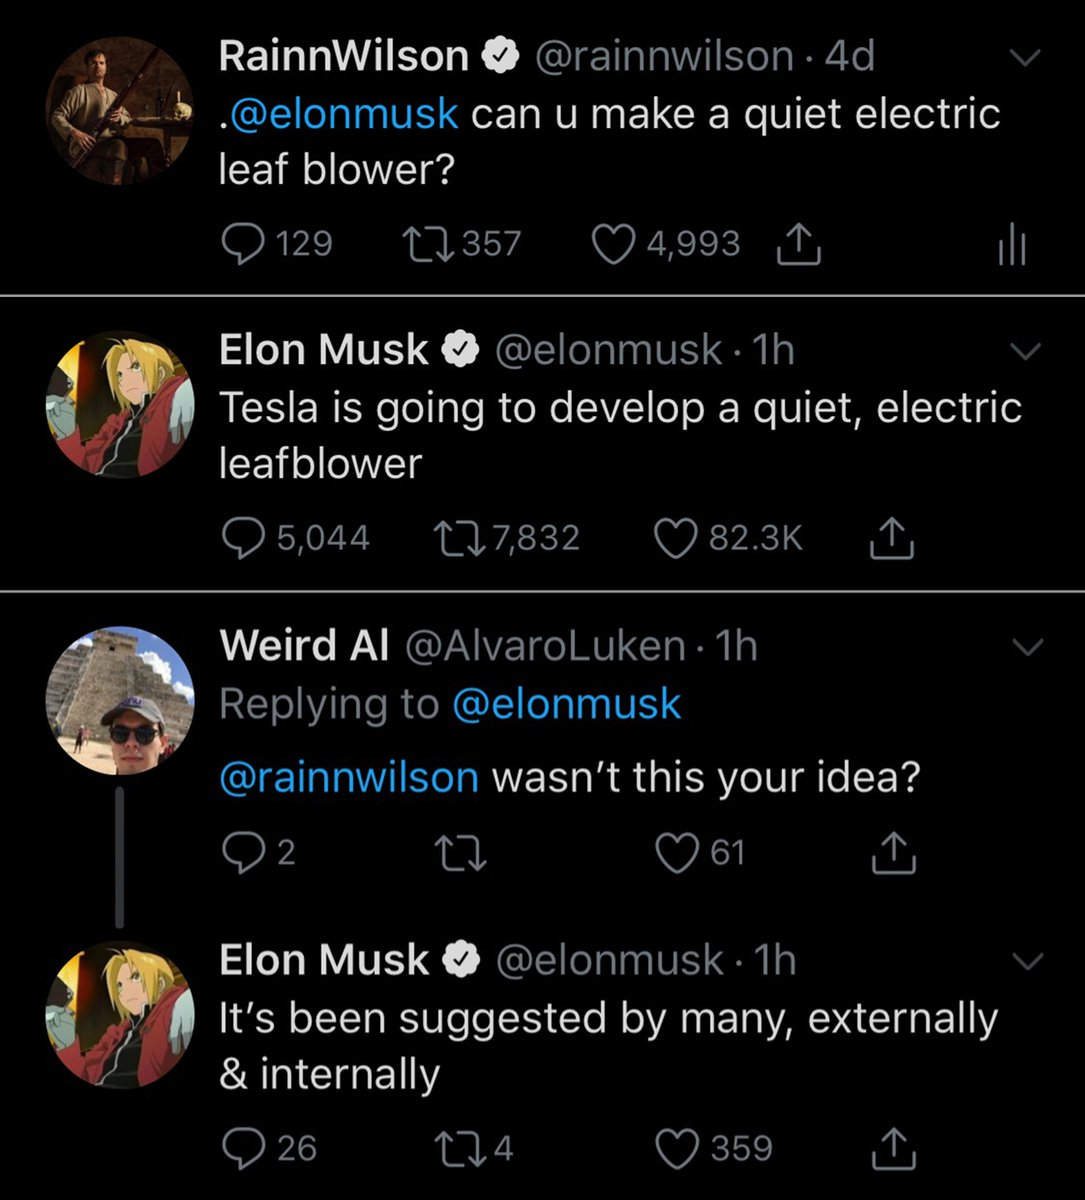 C'mon Musk, give me some credit. @elonmusk